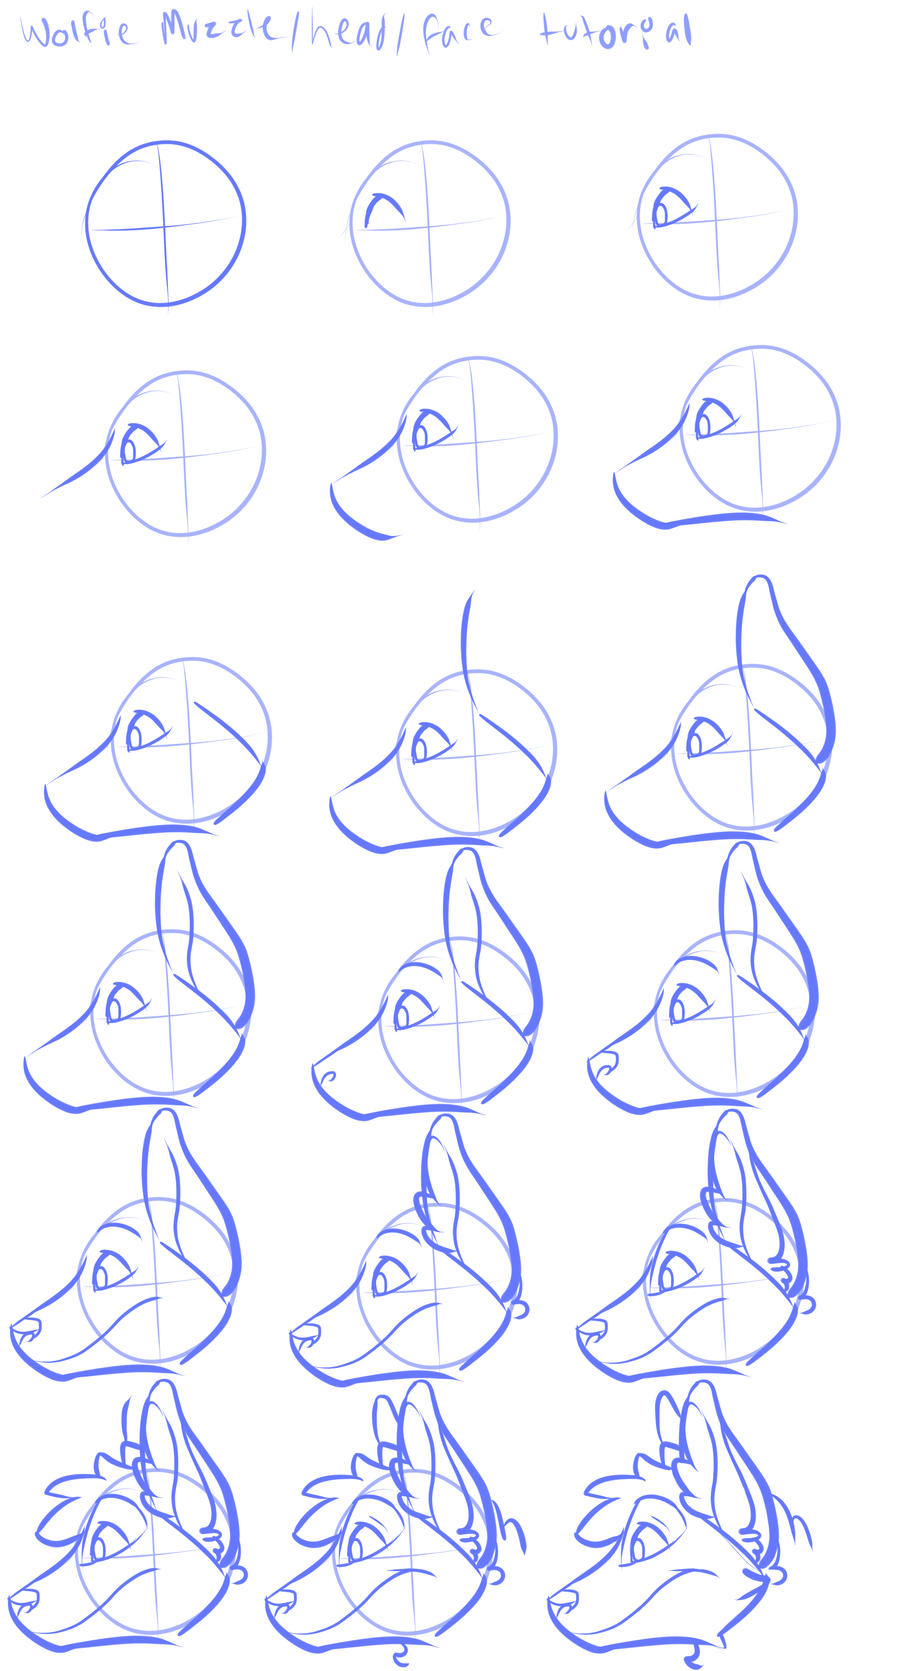 Wolfie head tutorial profile view by BloodLadenWolf